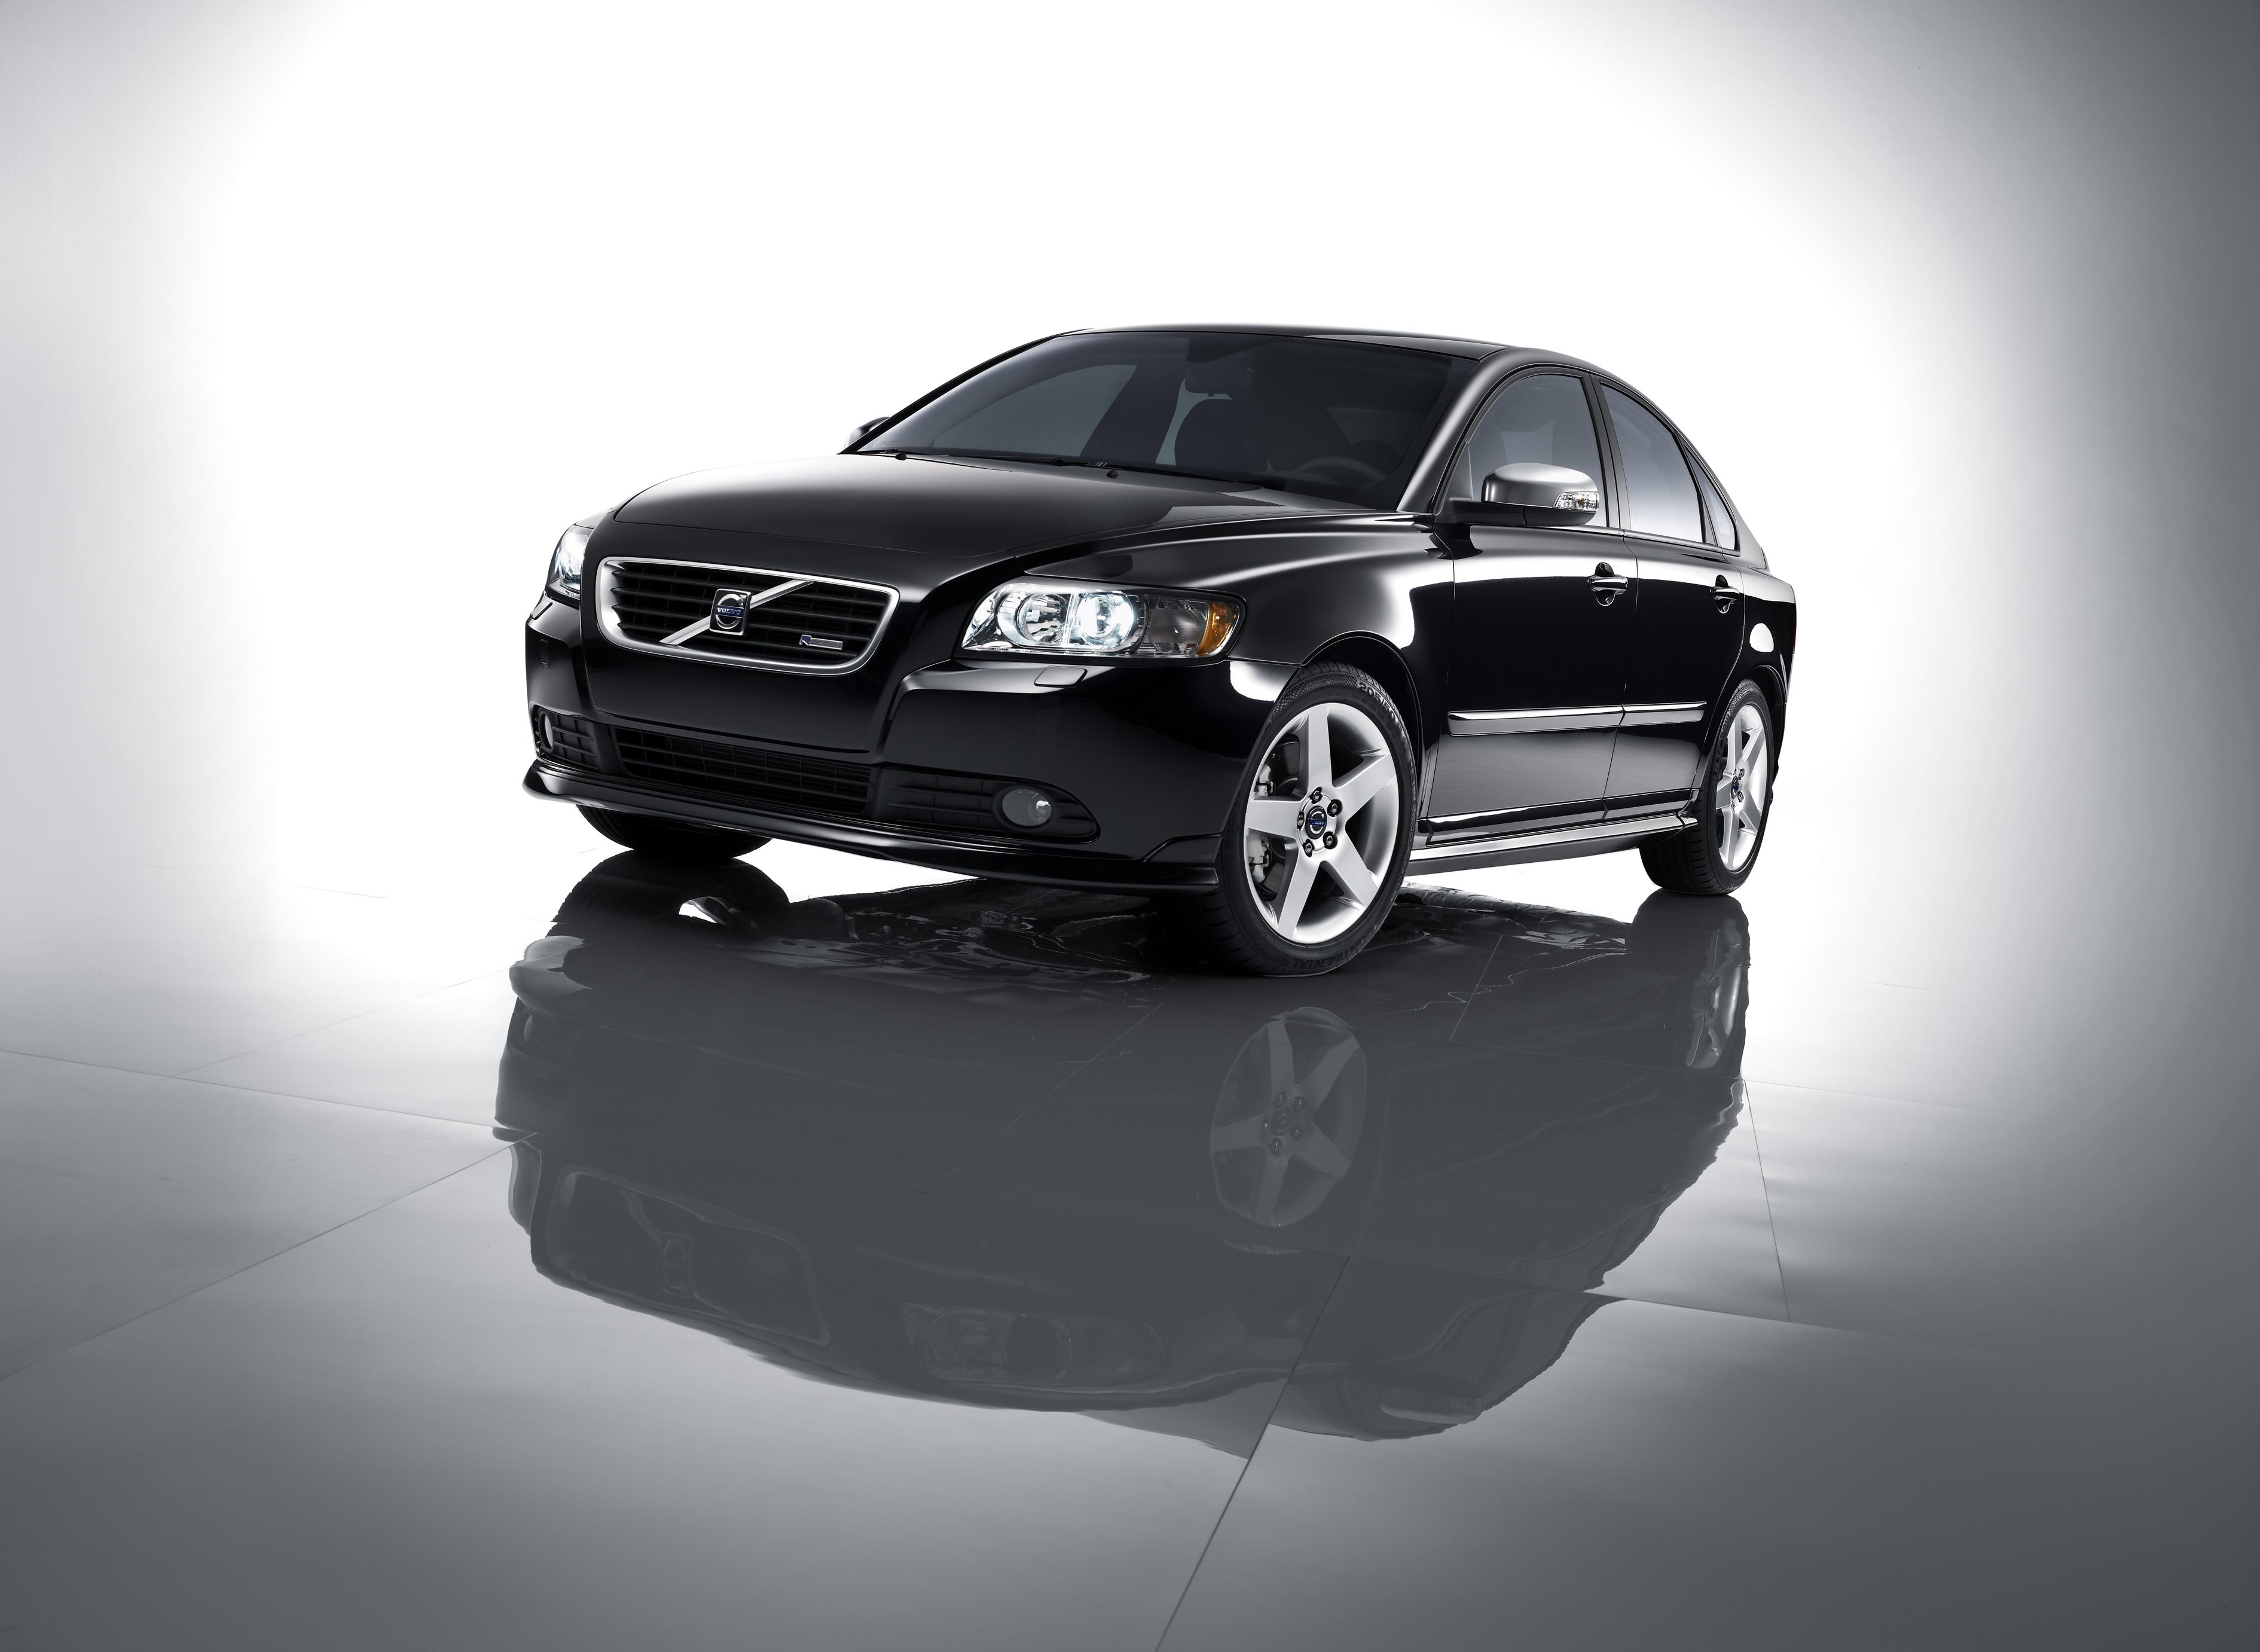 2008 Volvo C30, S40 And V50 R-Design | Top Speed